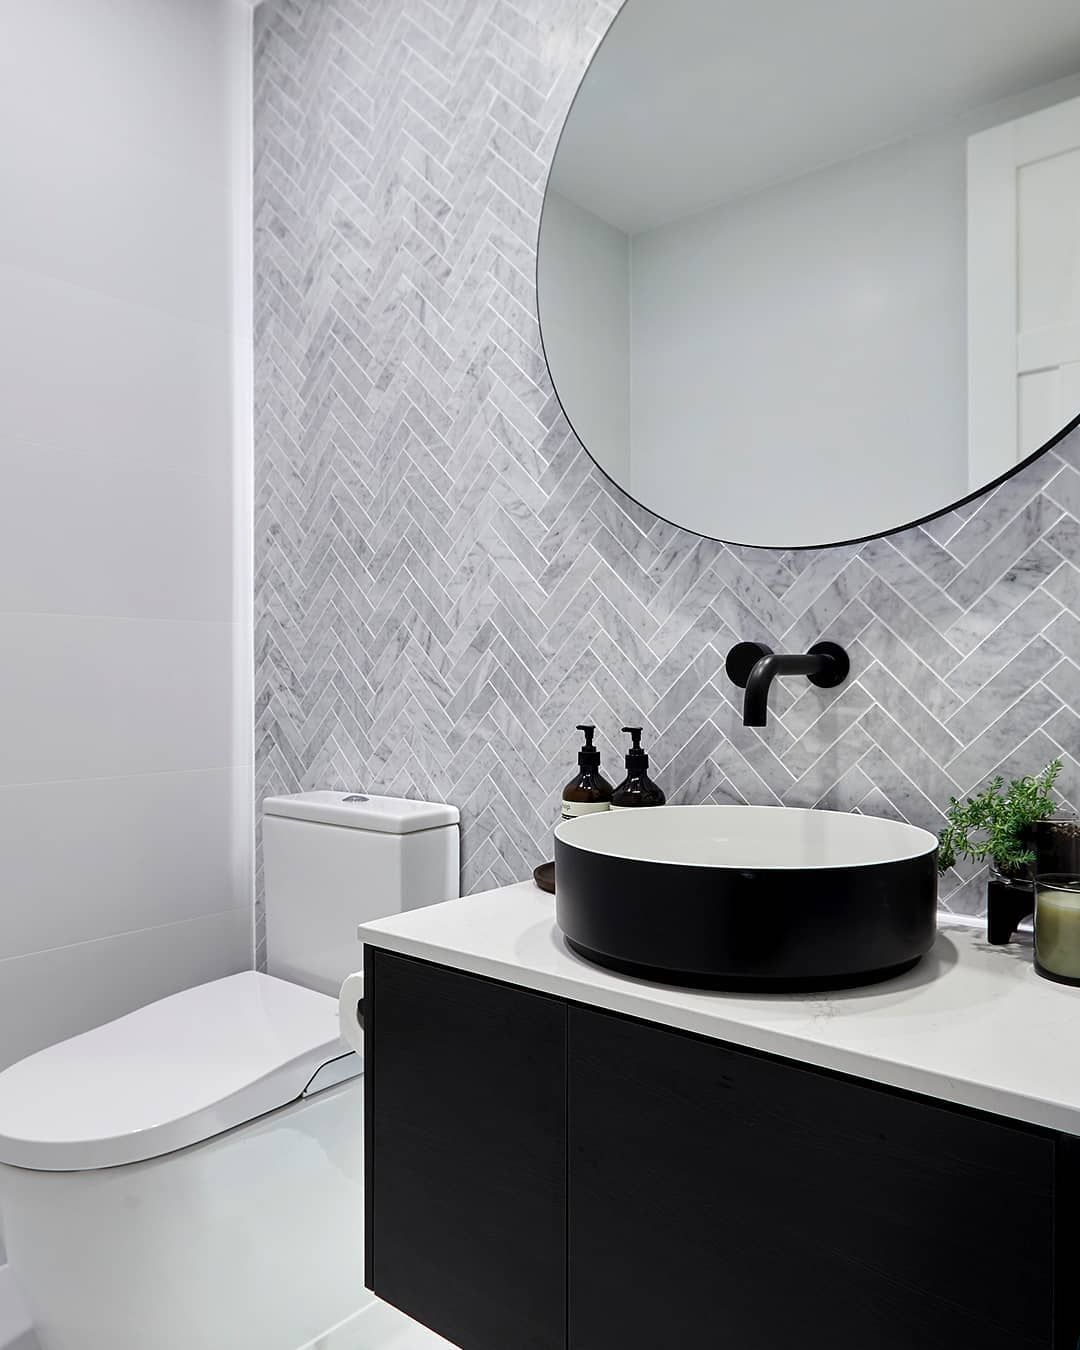 """Reece Bathrooms on Instagram: """"Kicking off the weekend with smart style, looking back at @kerrieandspence's stunner of a Powder Room from #9theblock. Smart technology in…"""" #modernpowderrooms"""